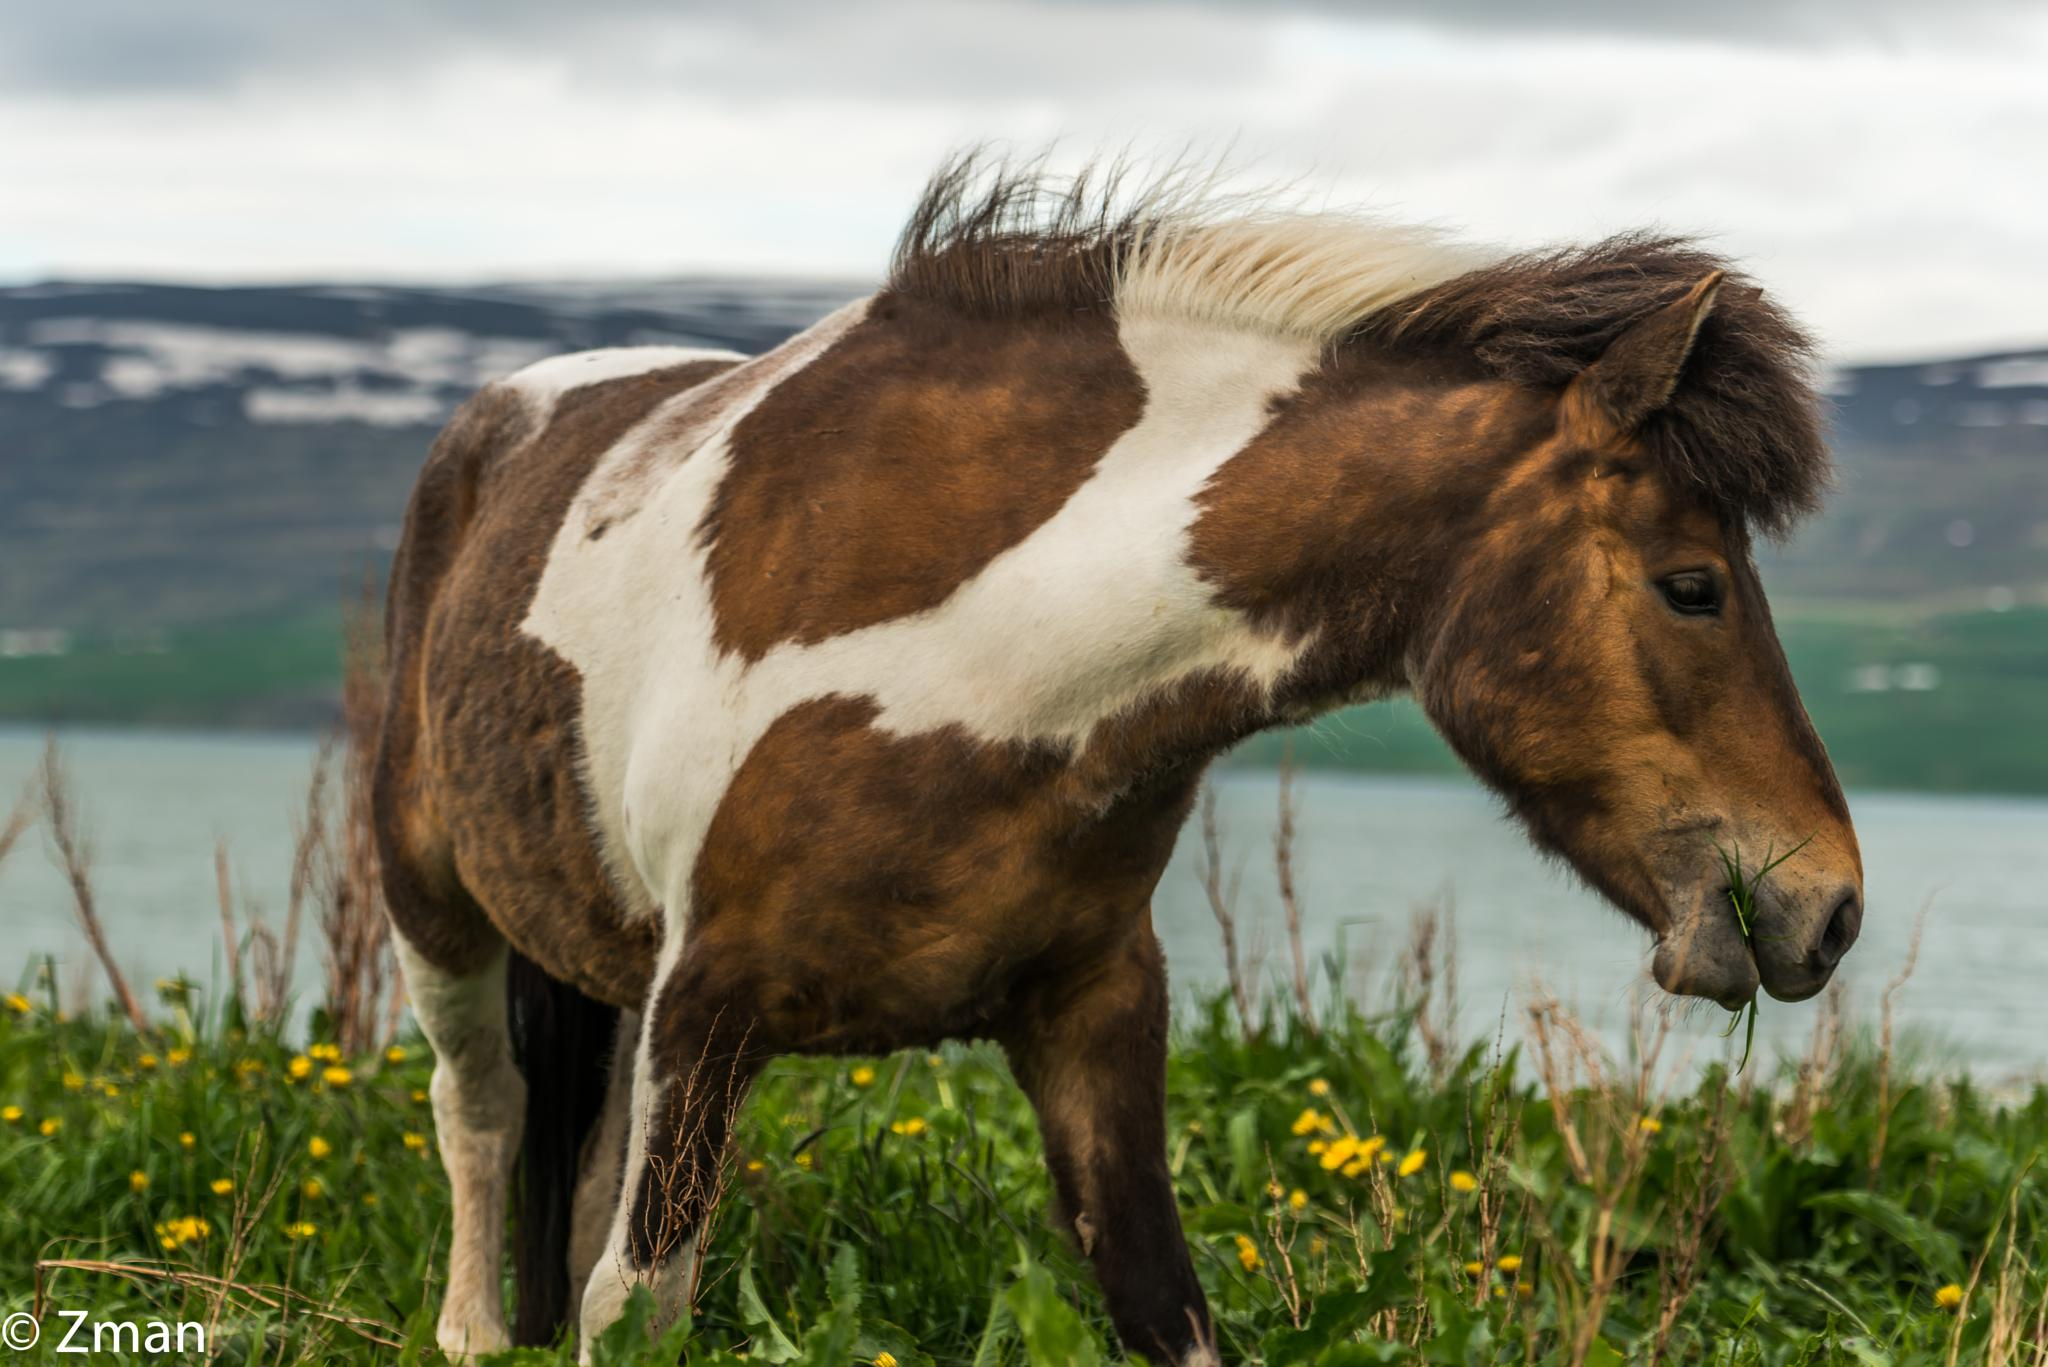 The Icelandic Horse 06 by muhammad.nasser.963